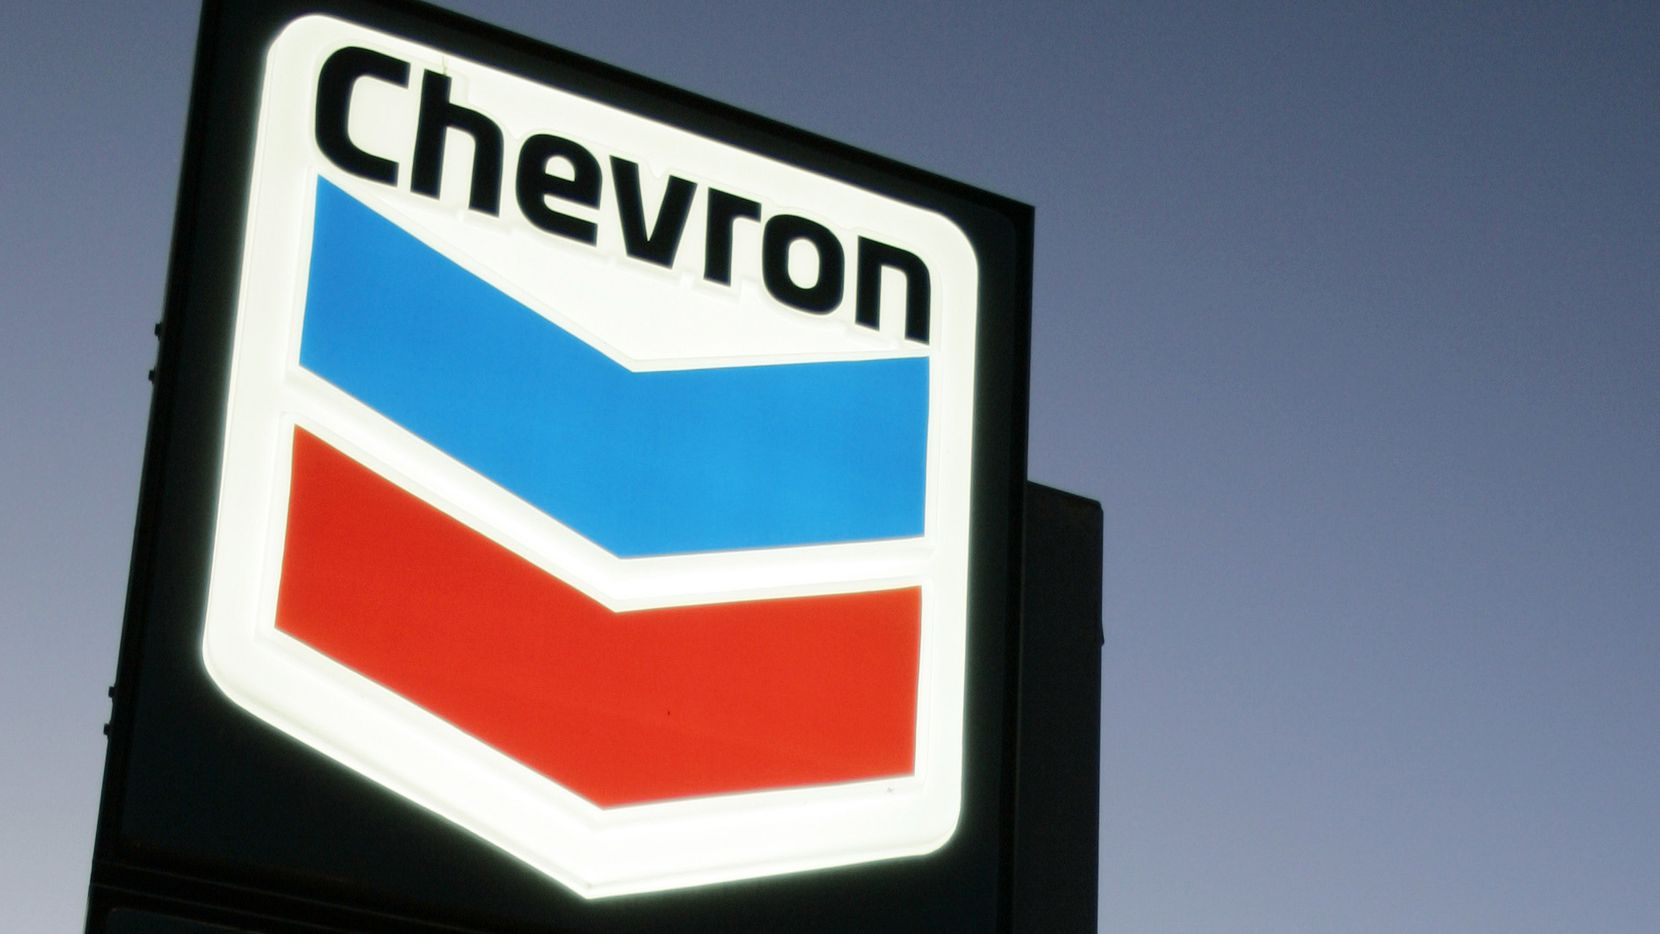 Chevron slashed its 2020 capital spending plan by 20% Tuesday, or about $4 billion. Chevron Corp. said Tuesday that it's goal is to lower run-rate operating costs by more than $1 billion by the end of the year.